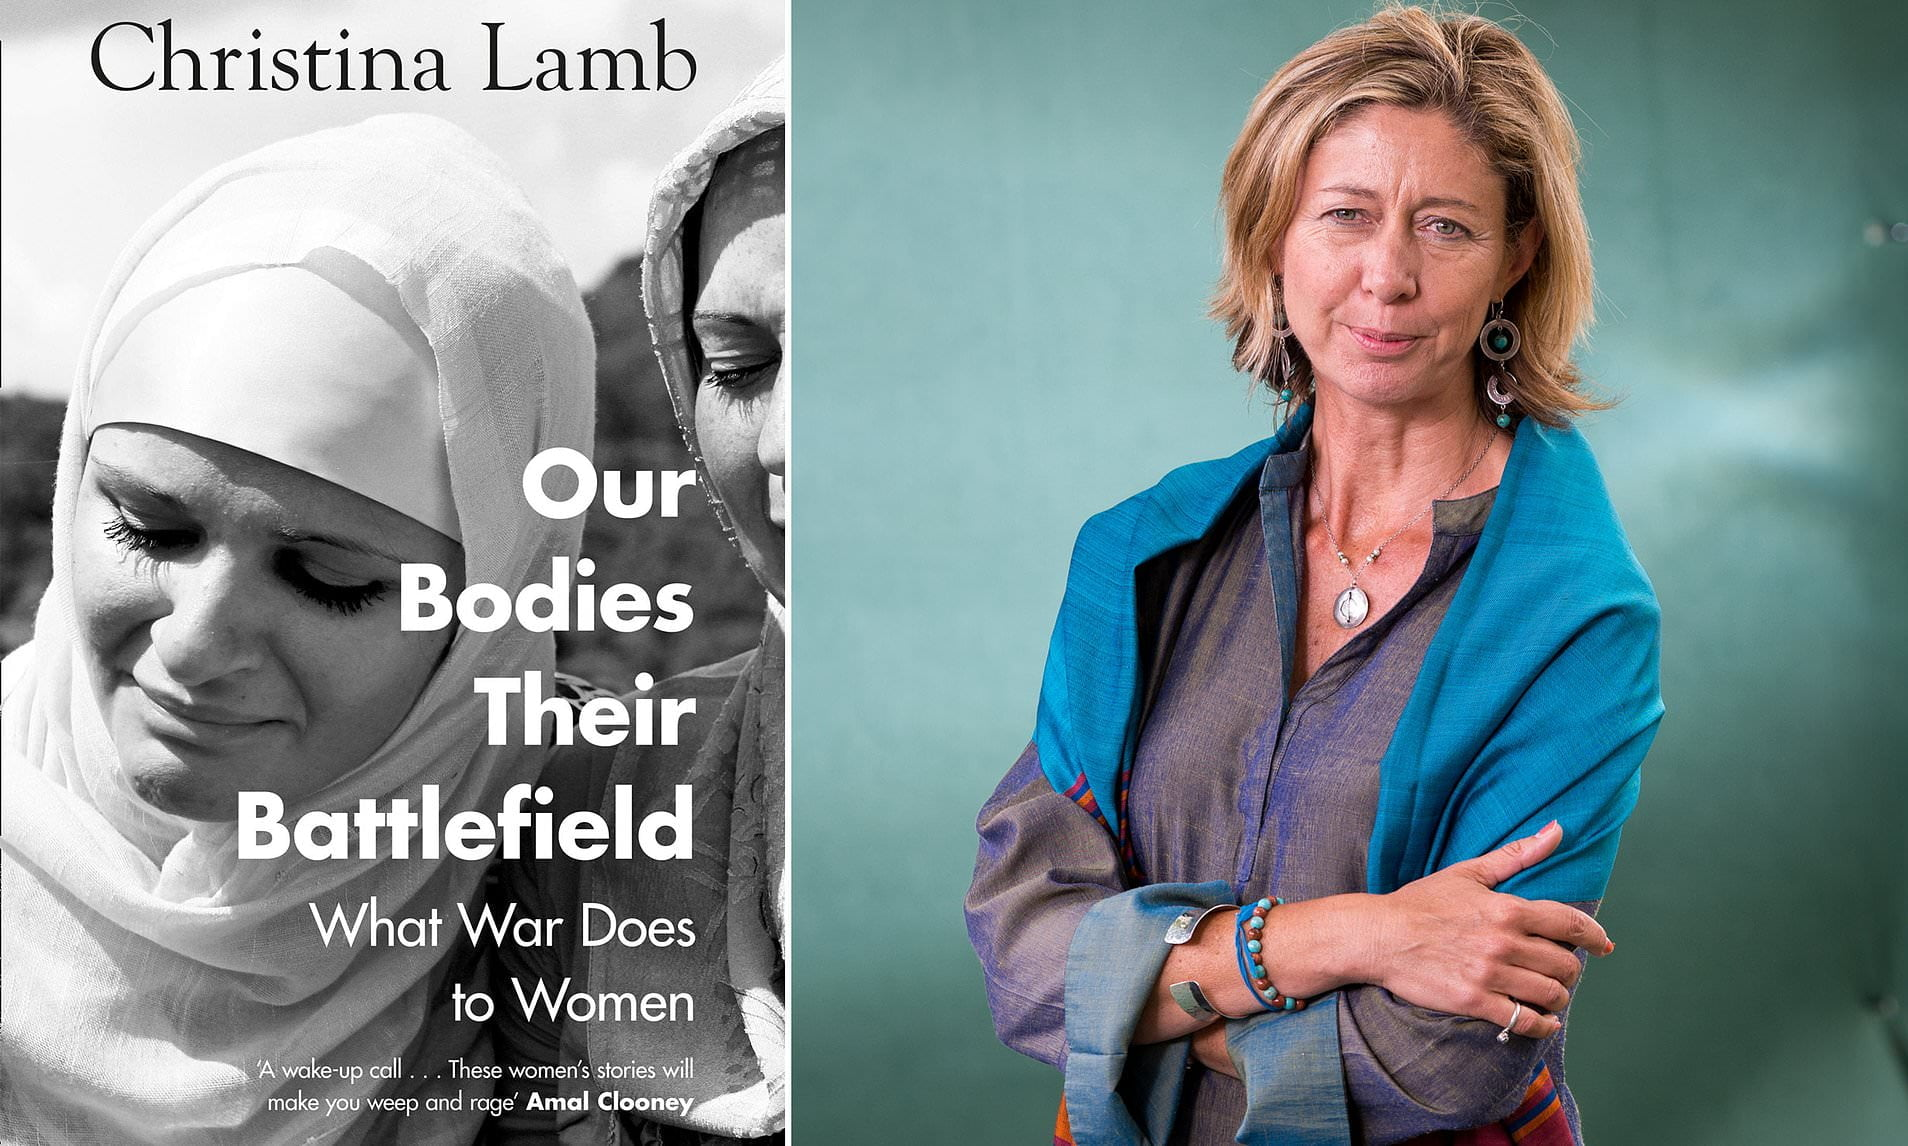 Our Bodies Their Battlefield – Christina Lamb, 25 June, 18.00